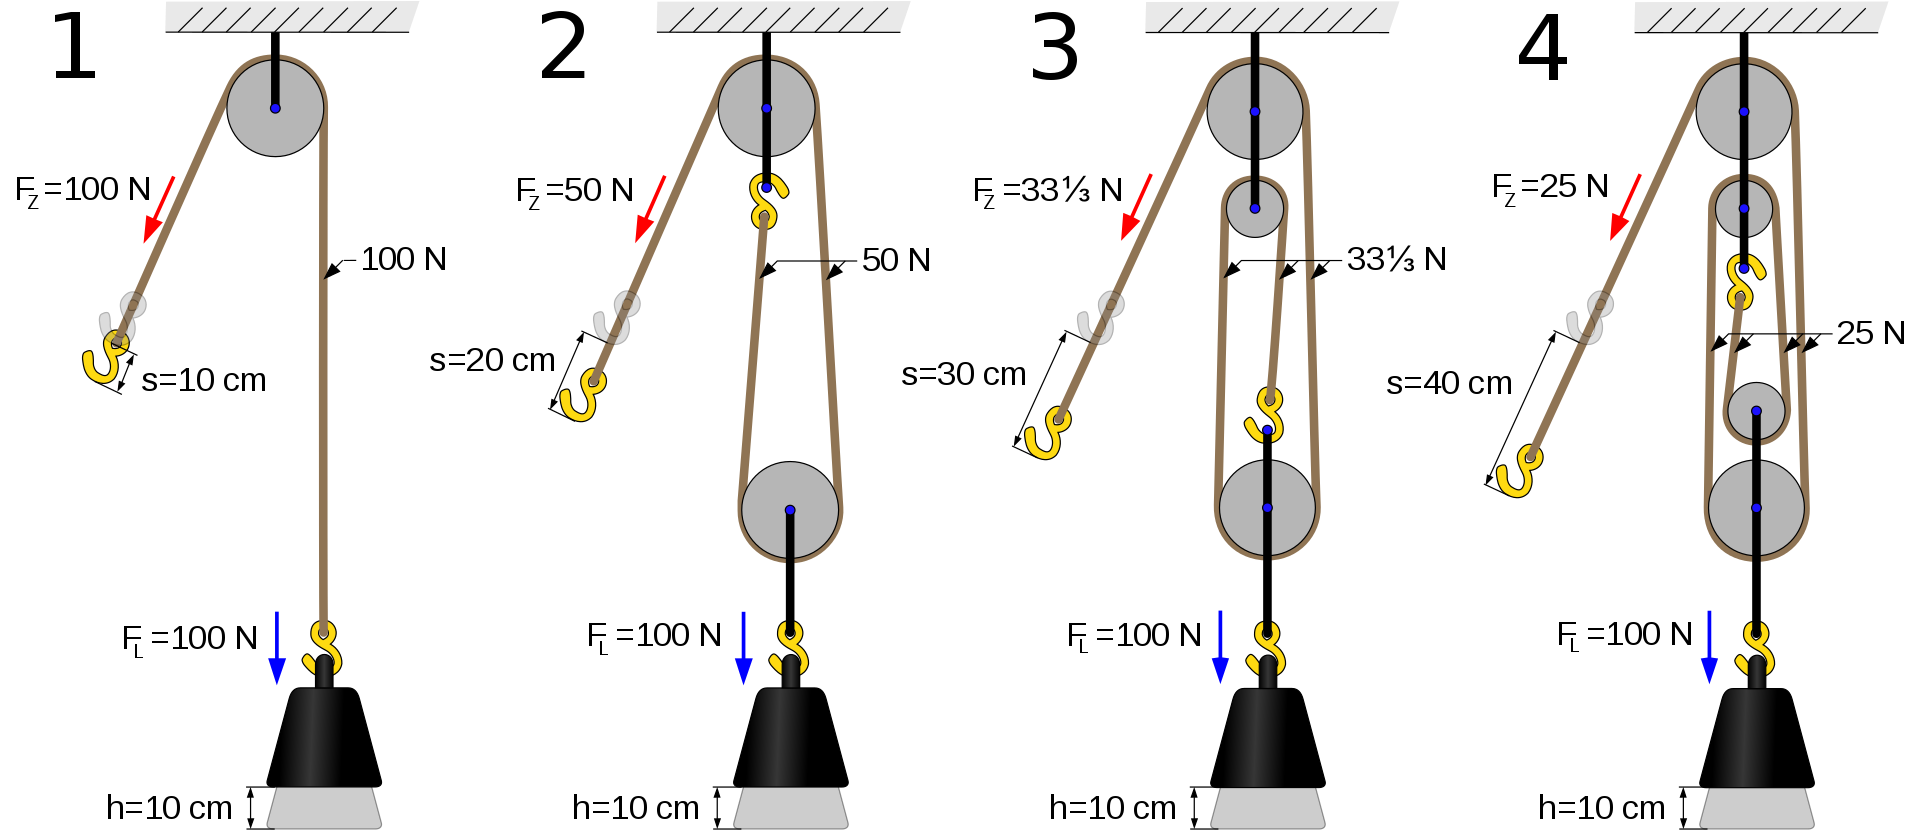 hight resolution of examples of rope and pulley systems illustrating mechanical advantage block and tackle pulley